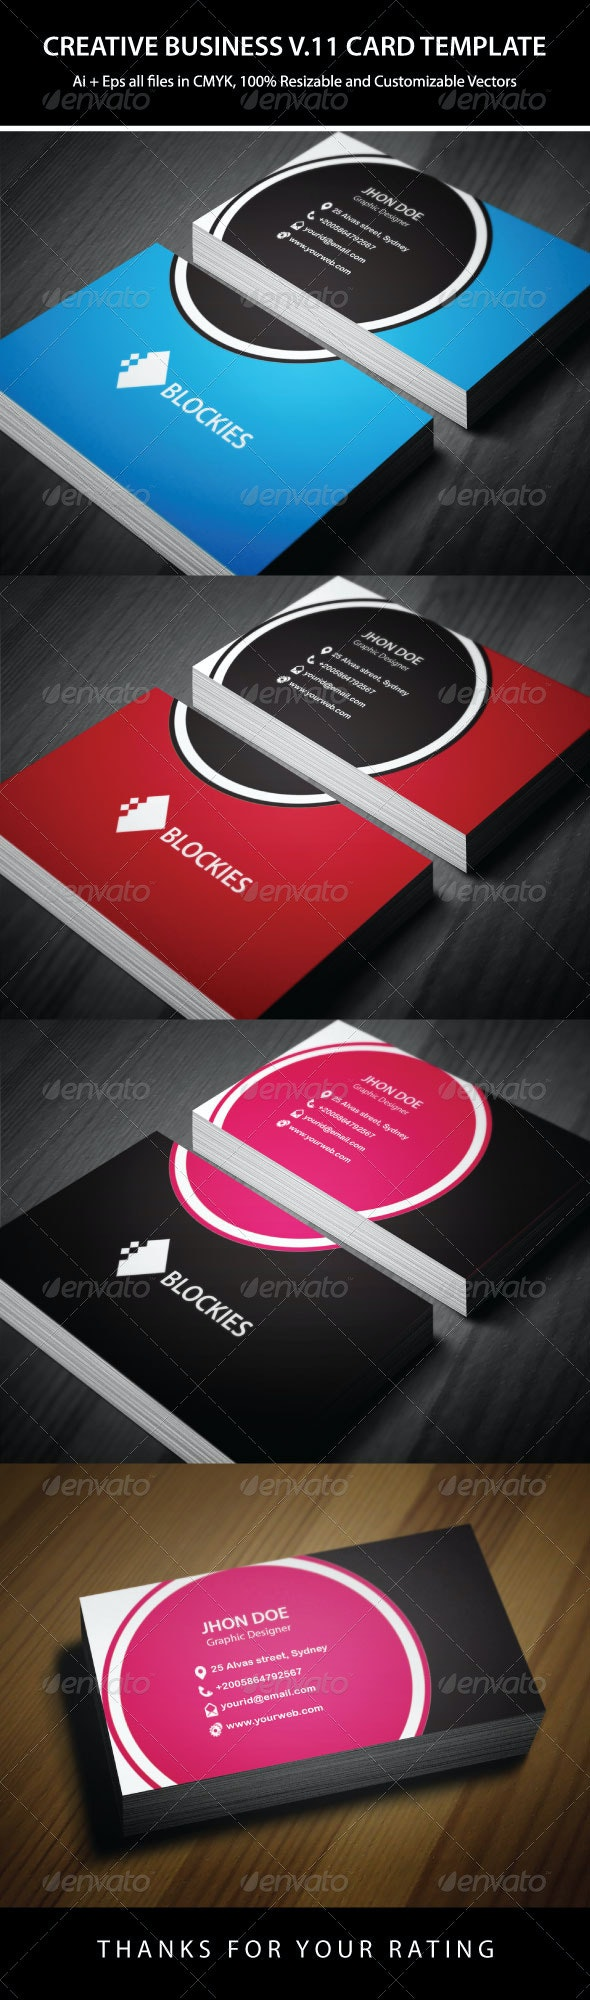 3 Colors Creative Business Card Template - Creative Business Cards